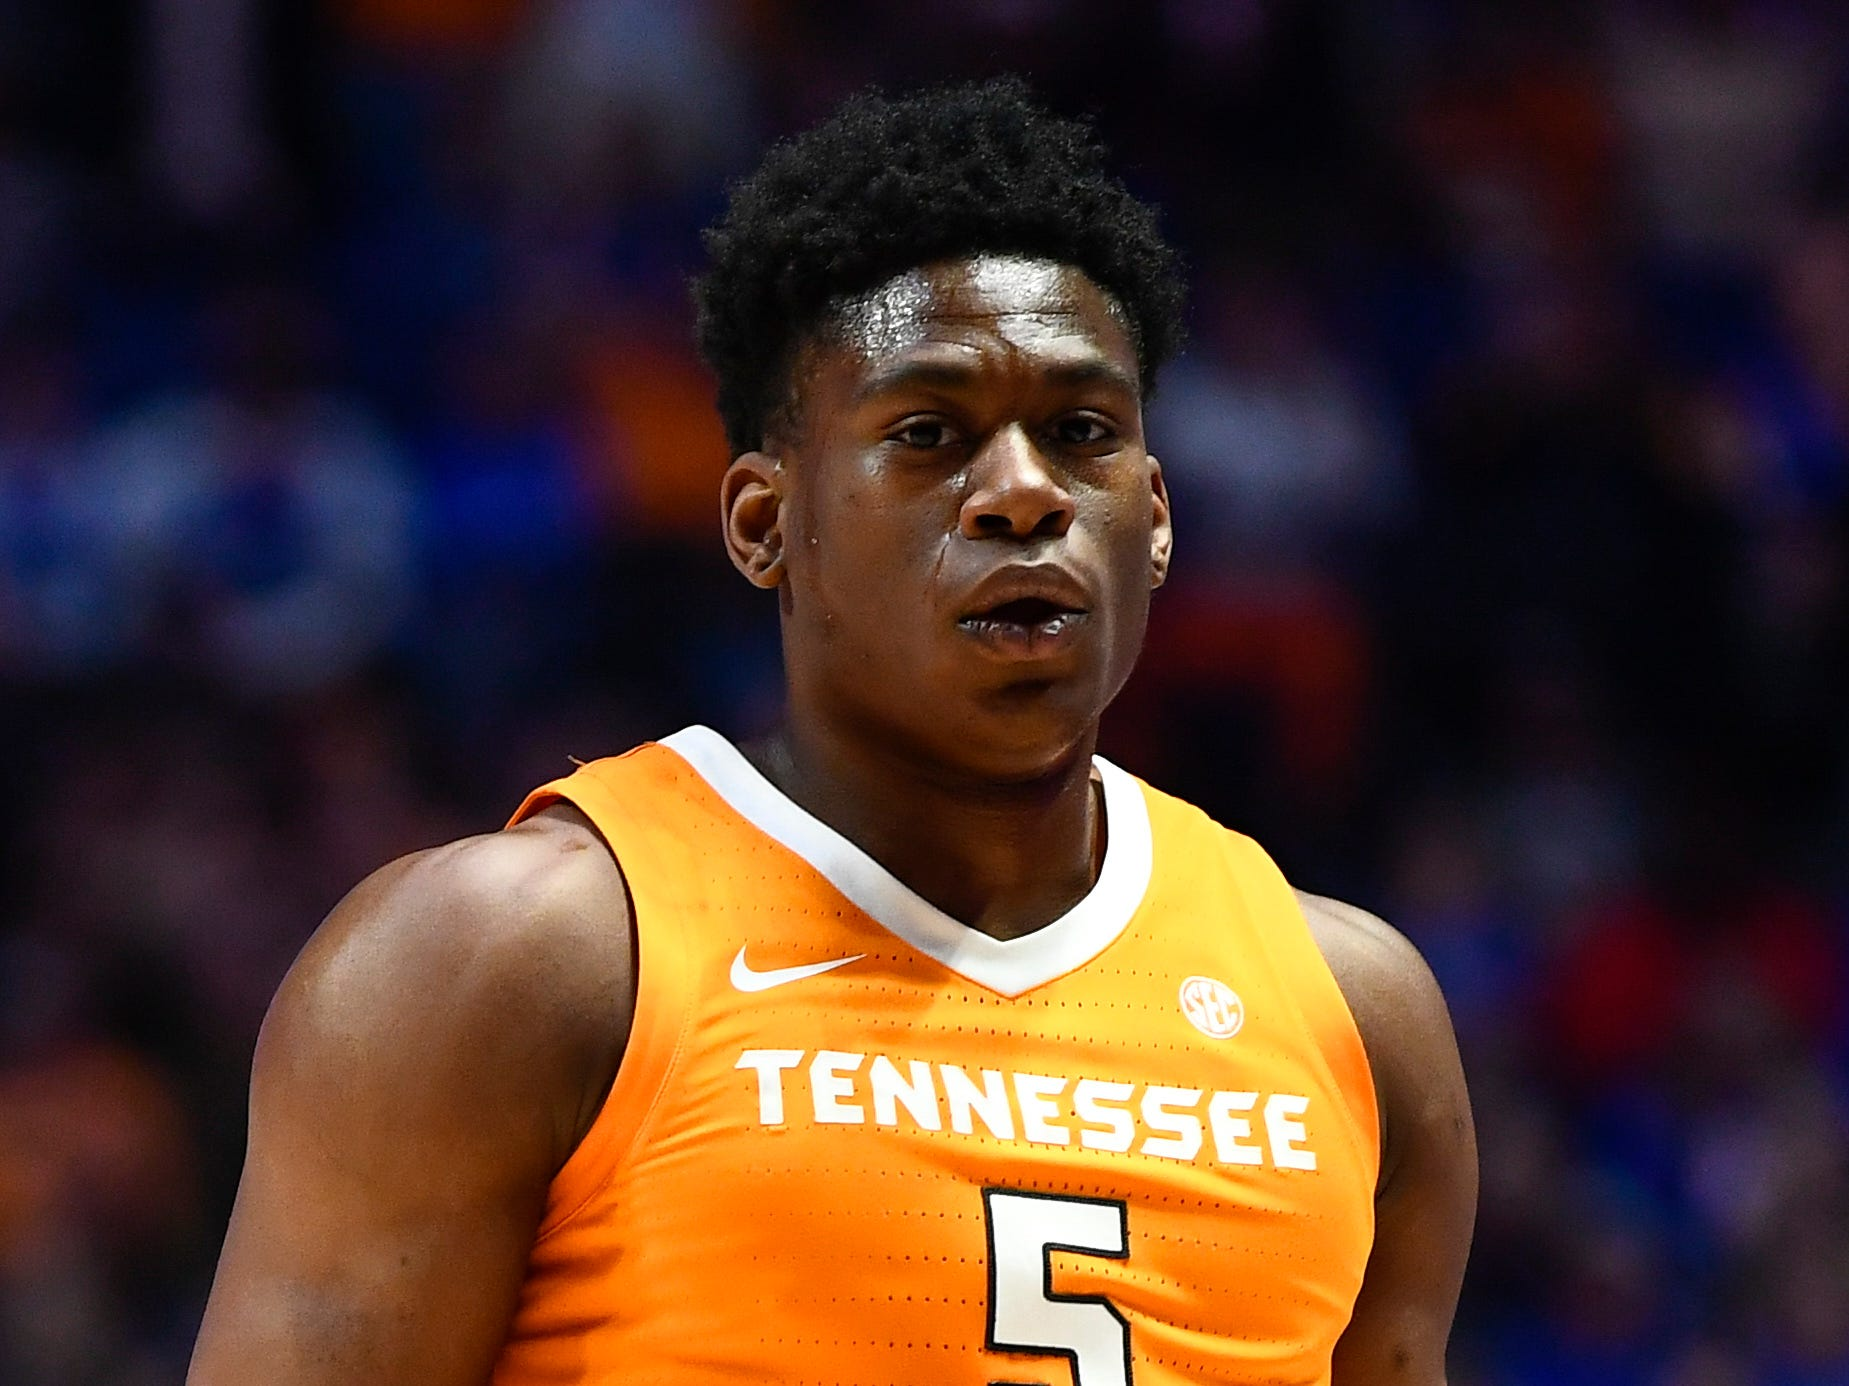 Tennessee guard Admiral Schofield (5) celebrates his three-pointer against Kentucky during the first half of the SEC Men's Basketball Tournament semifinal game at Bridgestone Arena in Nashville, Tenn., Saturday, March 16, 2019.